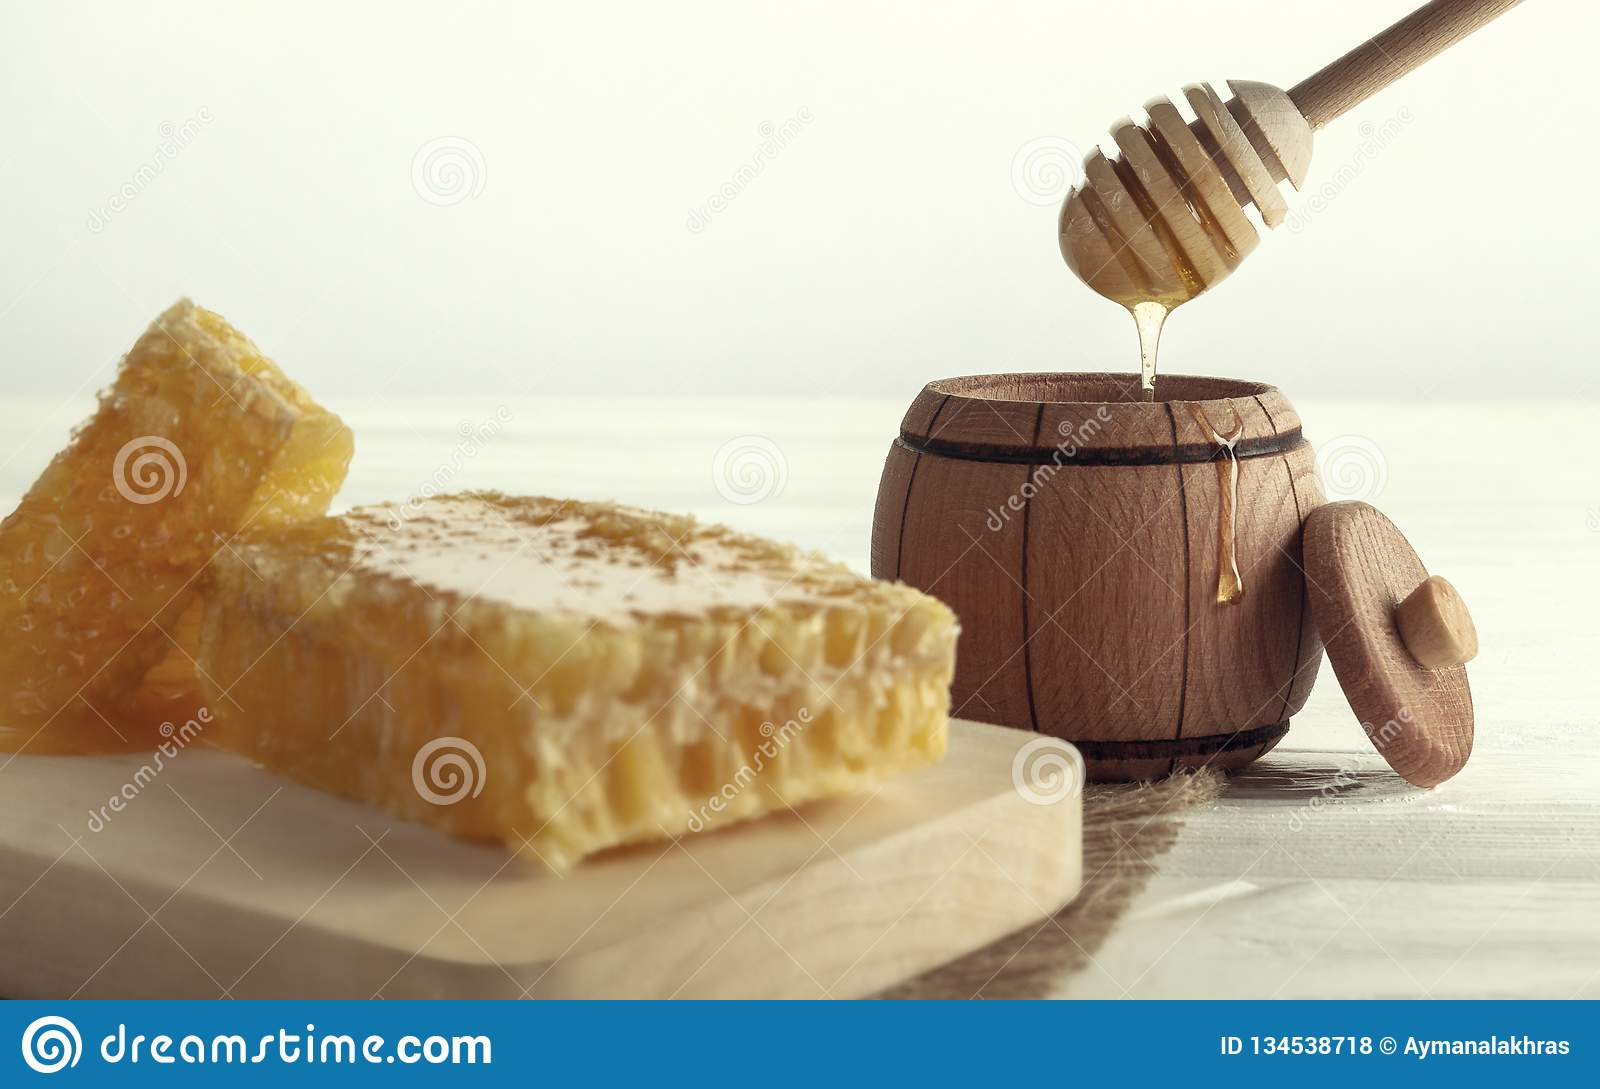 Honey dipper in Wooden jar and honey comb on wooden tray